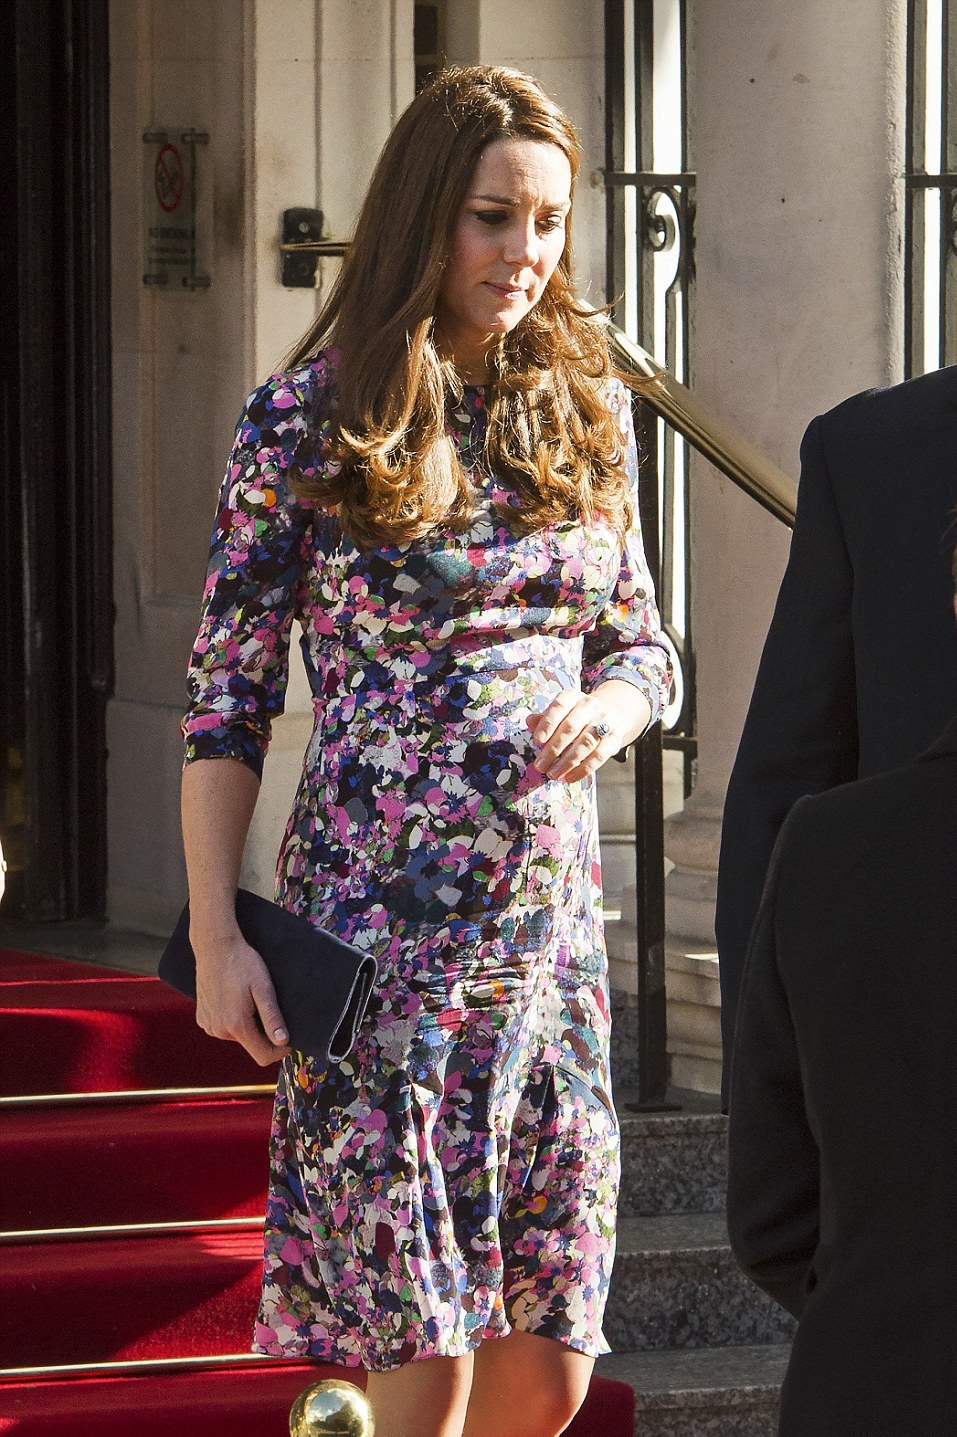 The Duchess departing the Goring Hotel in London (Photo: BenCawthral/LNP)